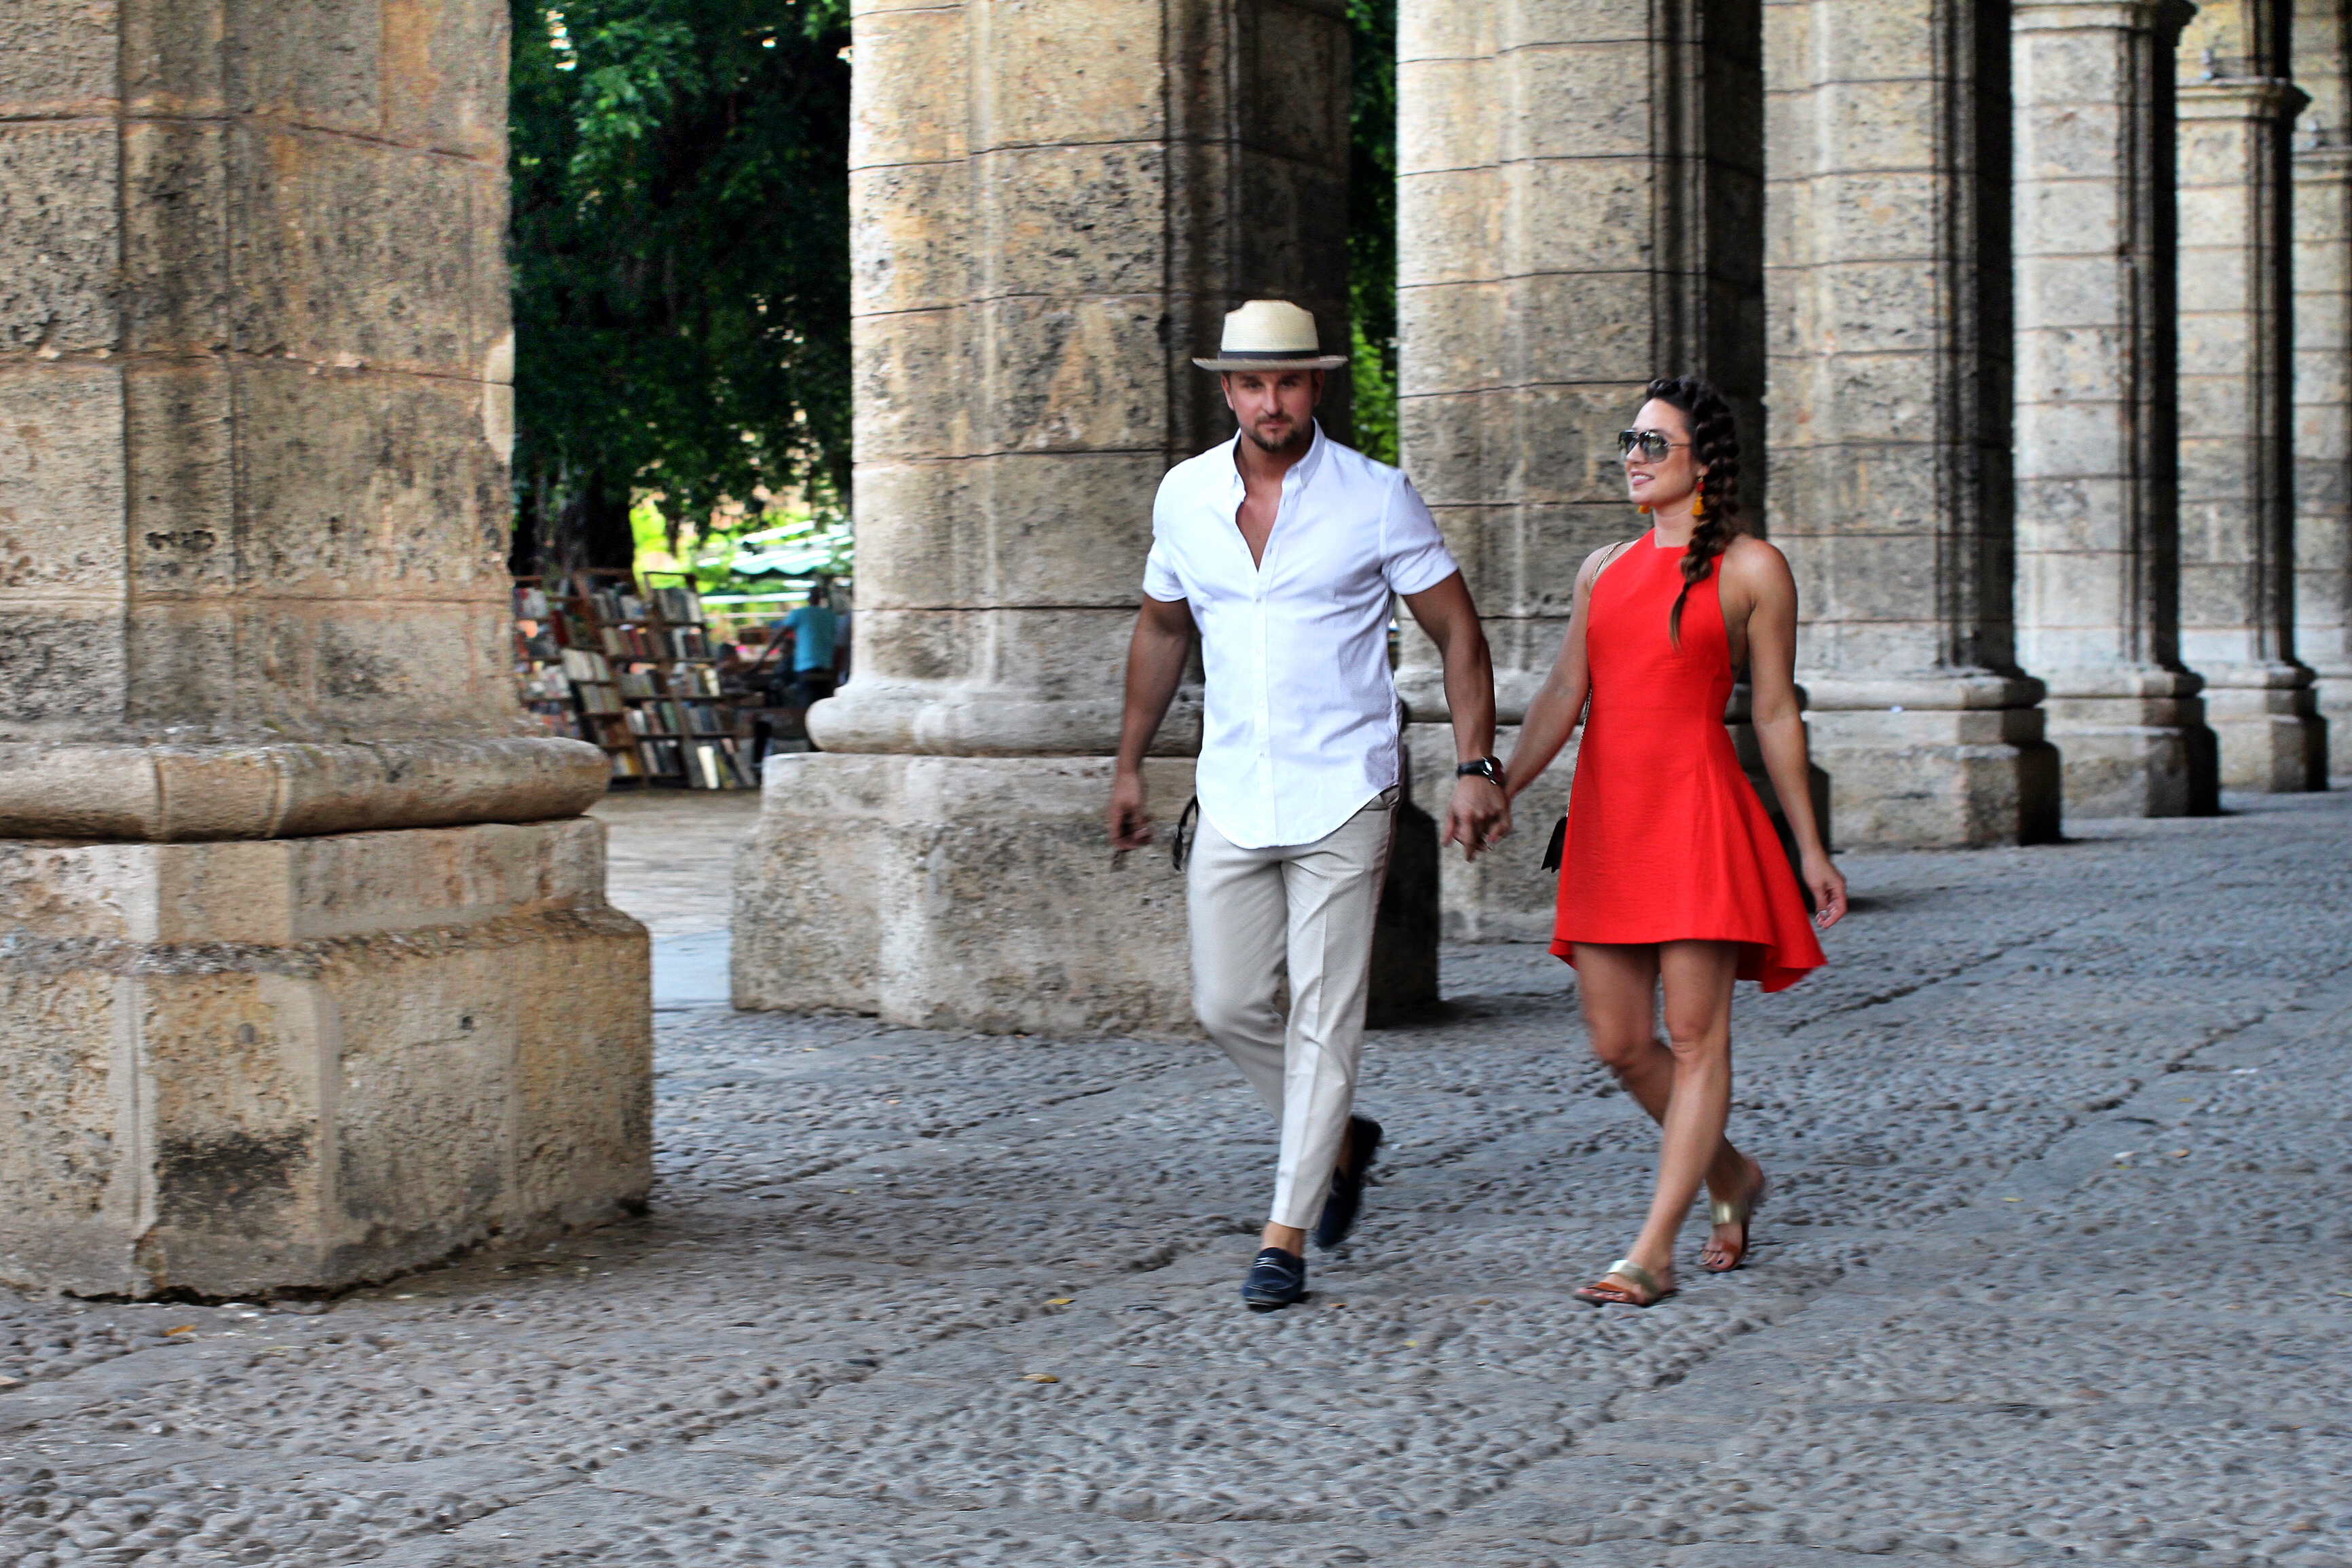 holding-hands-girl-boy-red-dress-fedora-columns-streets-havana-cuba